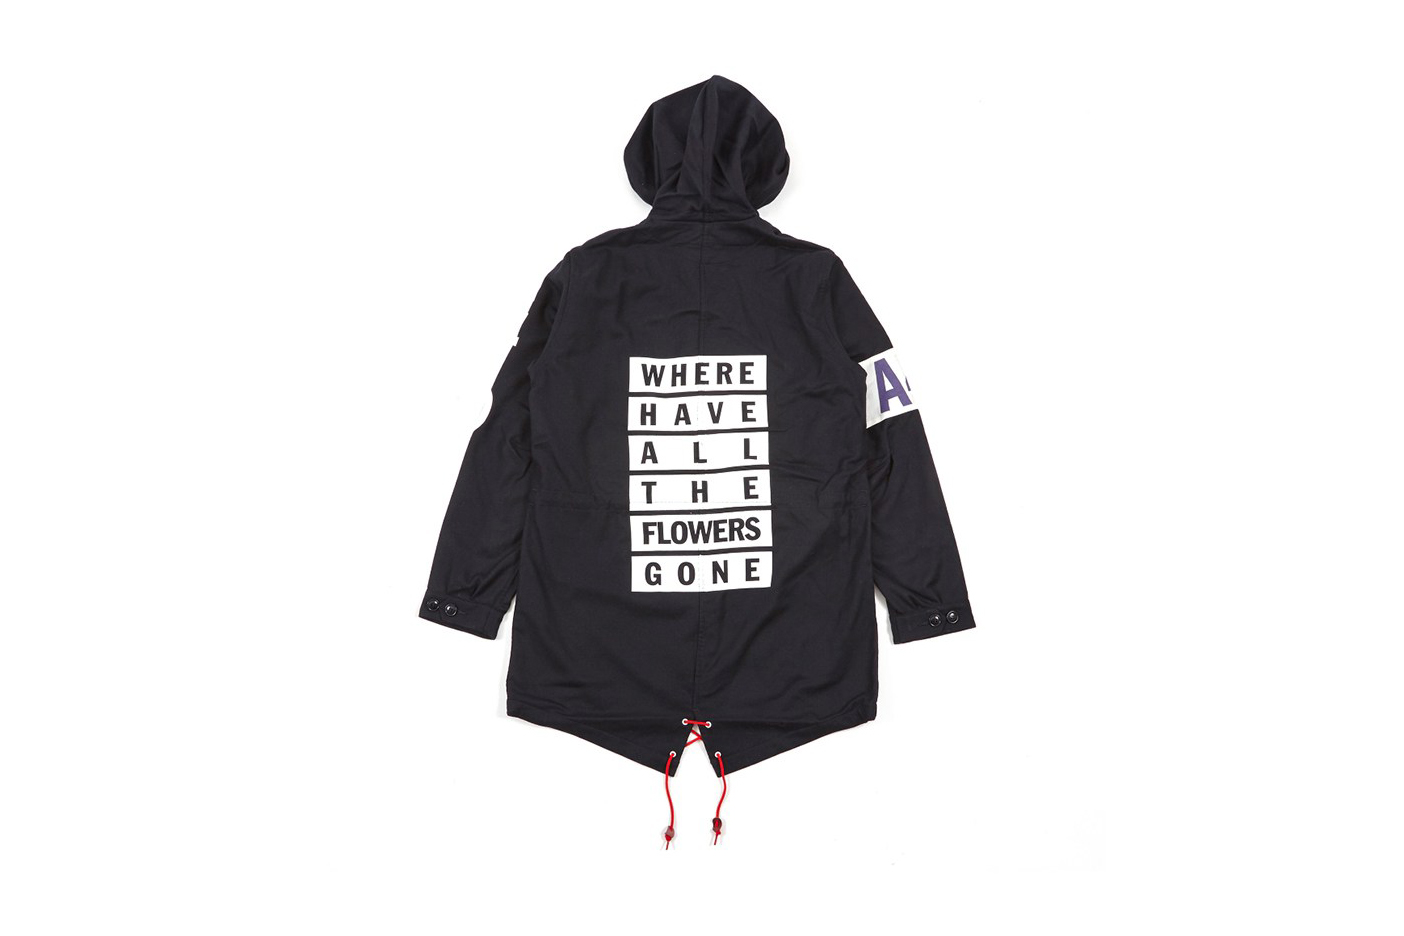 Cali Thornhill DeWitt Drops a Capsule Collection With A.FOUR